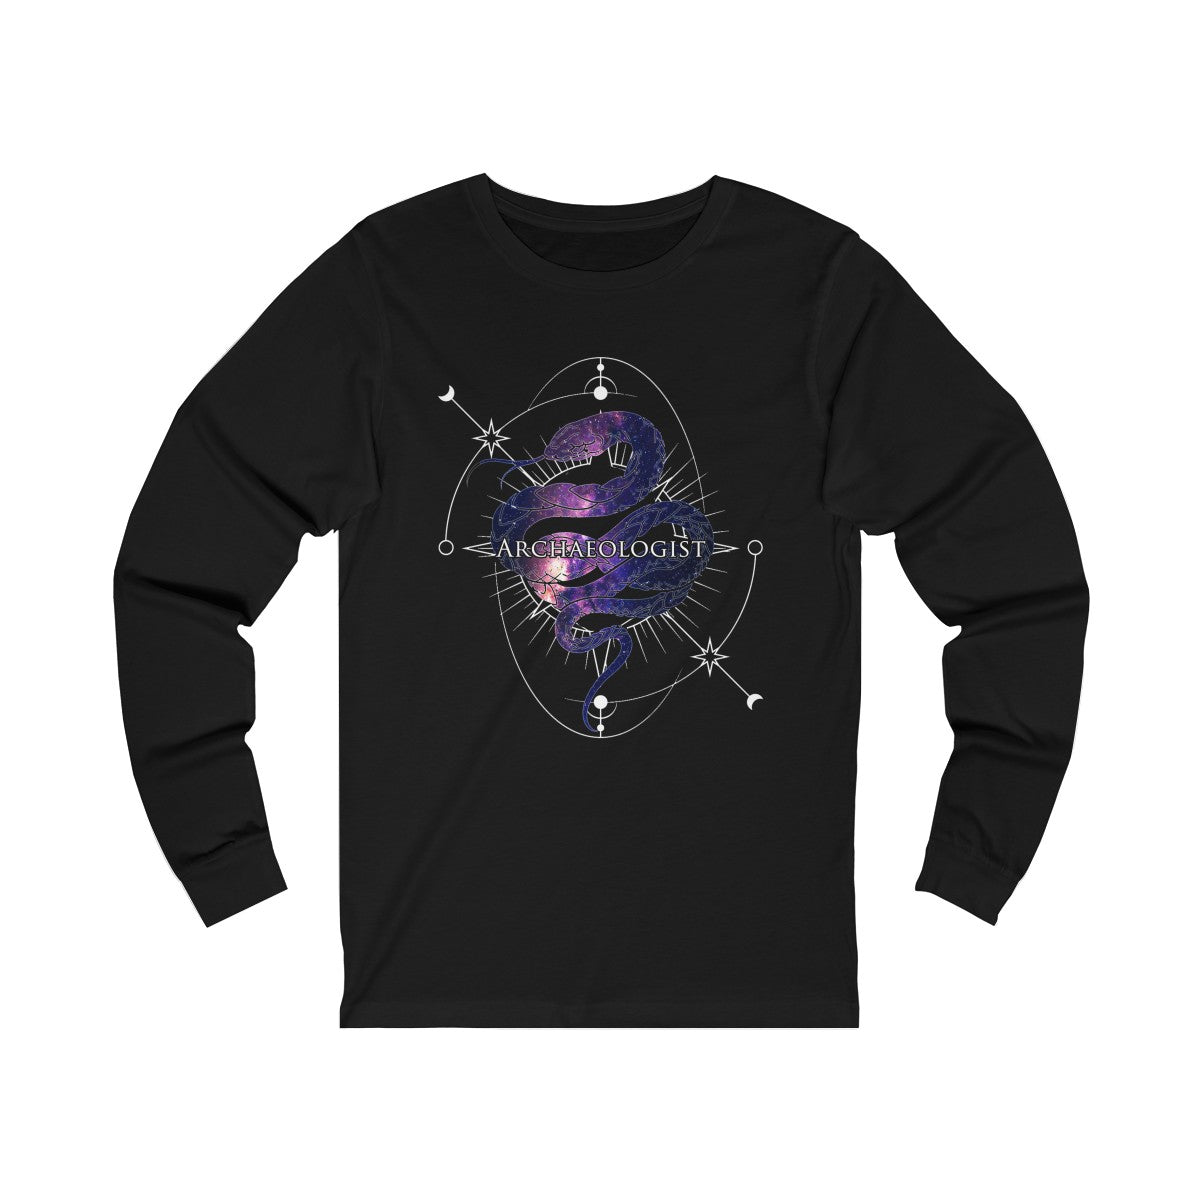 Archaeologist Long Sleeve Tee